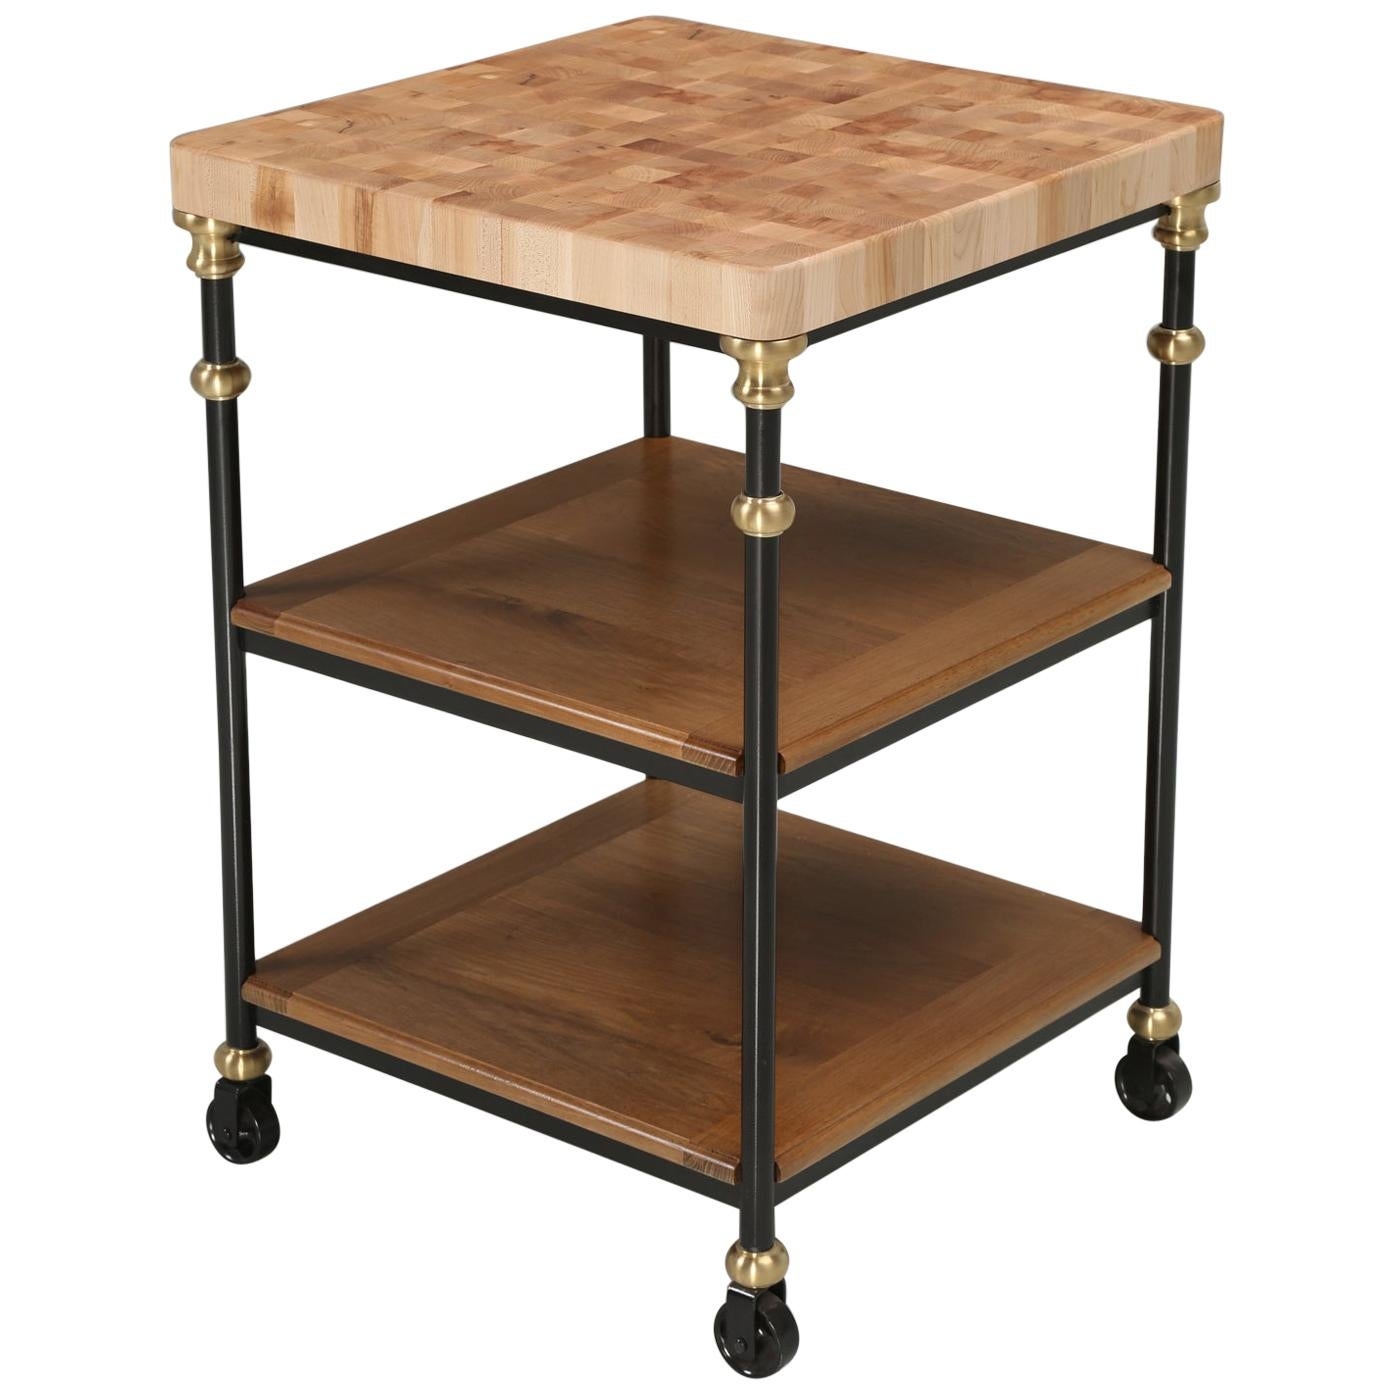 Industrial Style French Inspired Kitchen Island, Butcher Block Top in Any Size